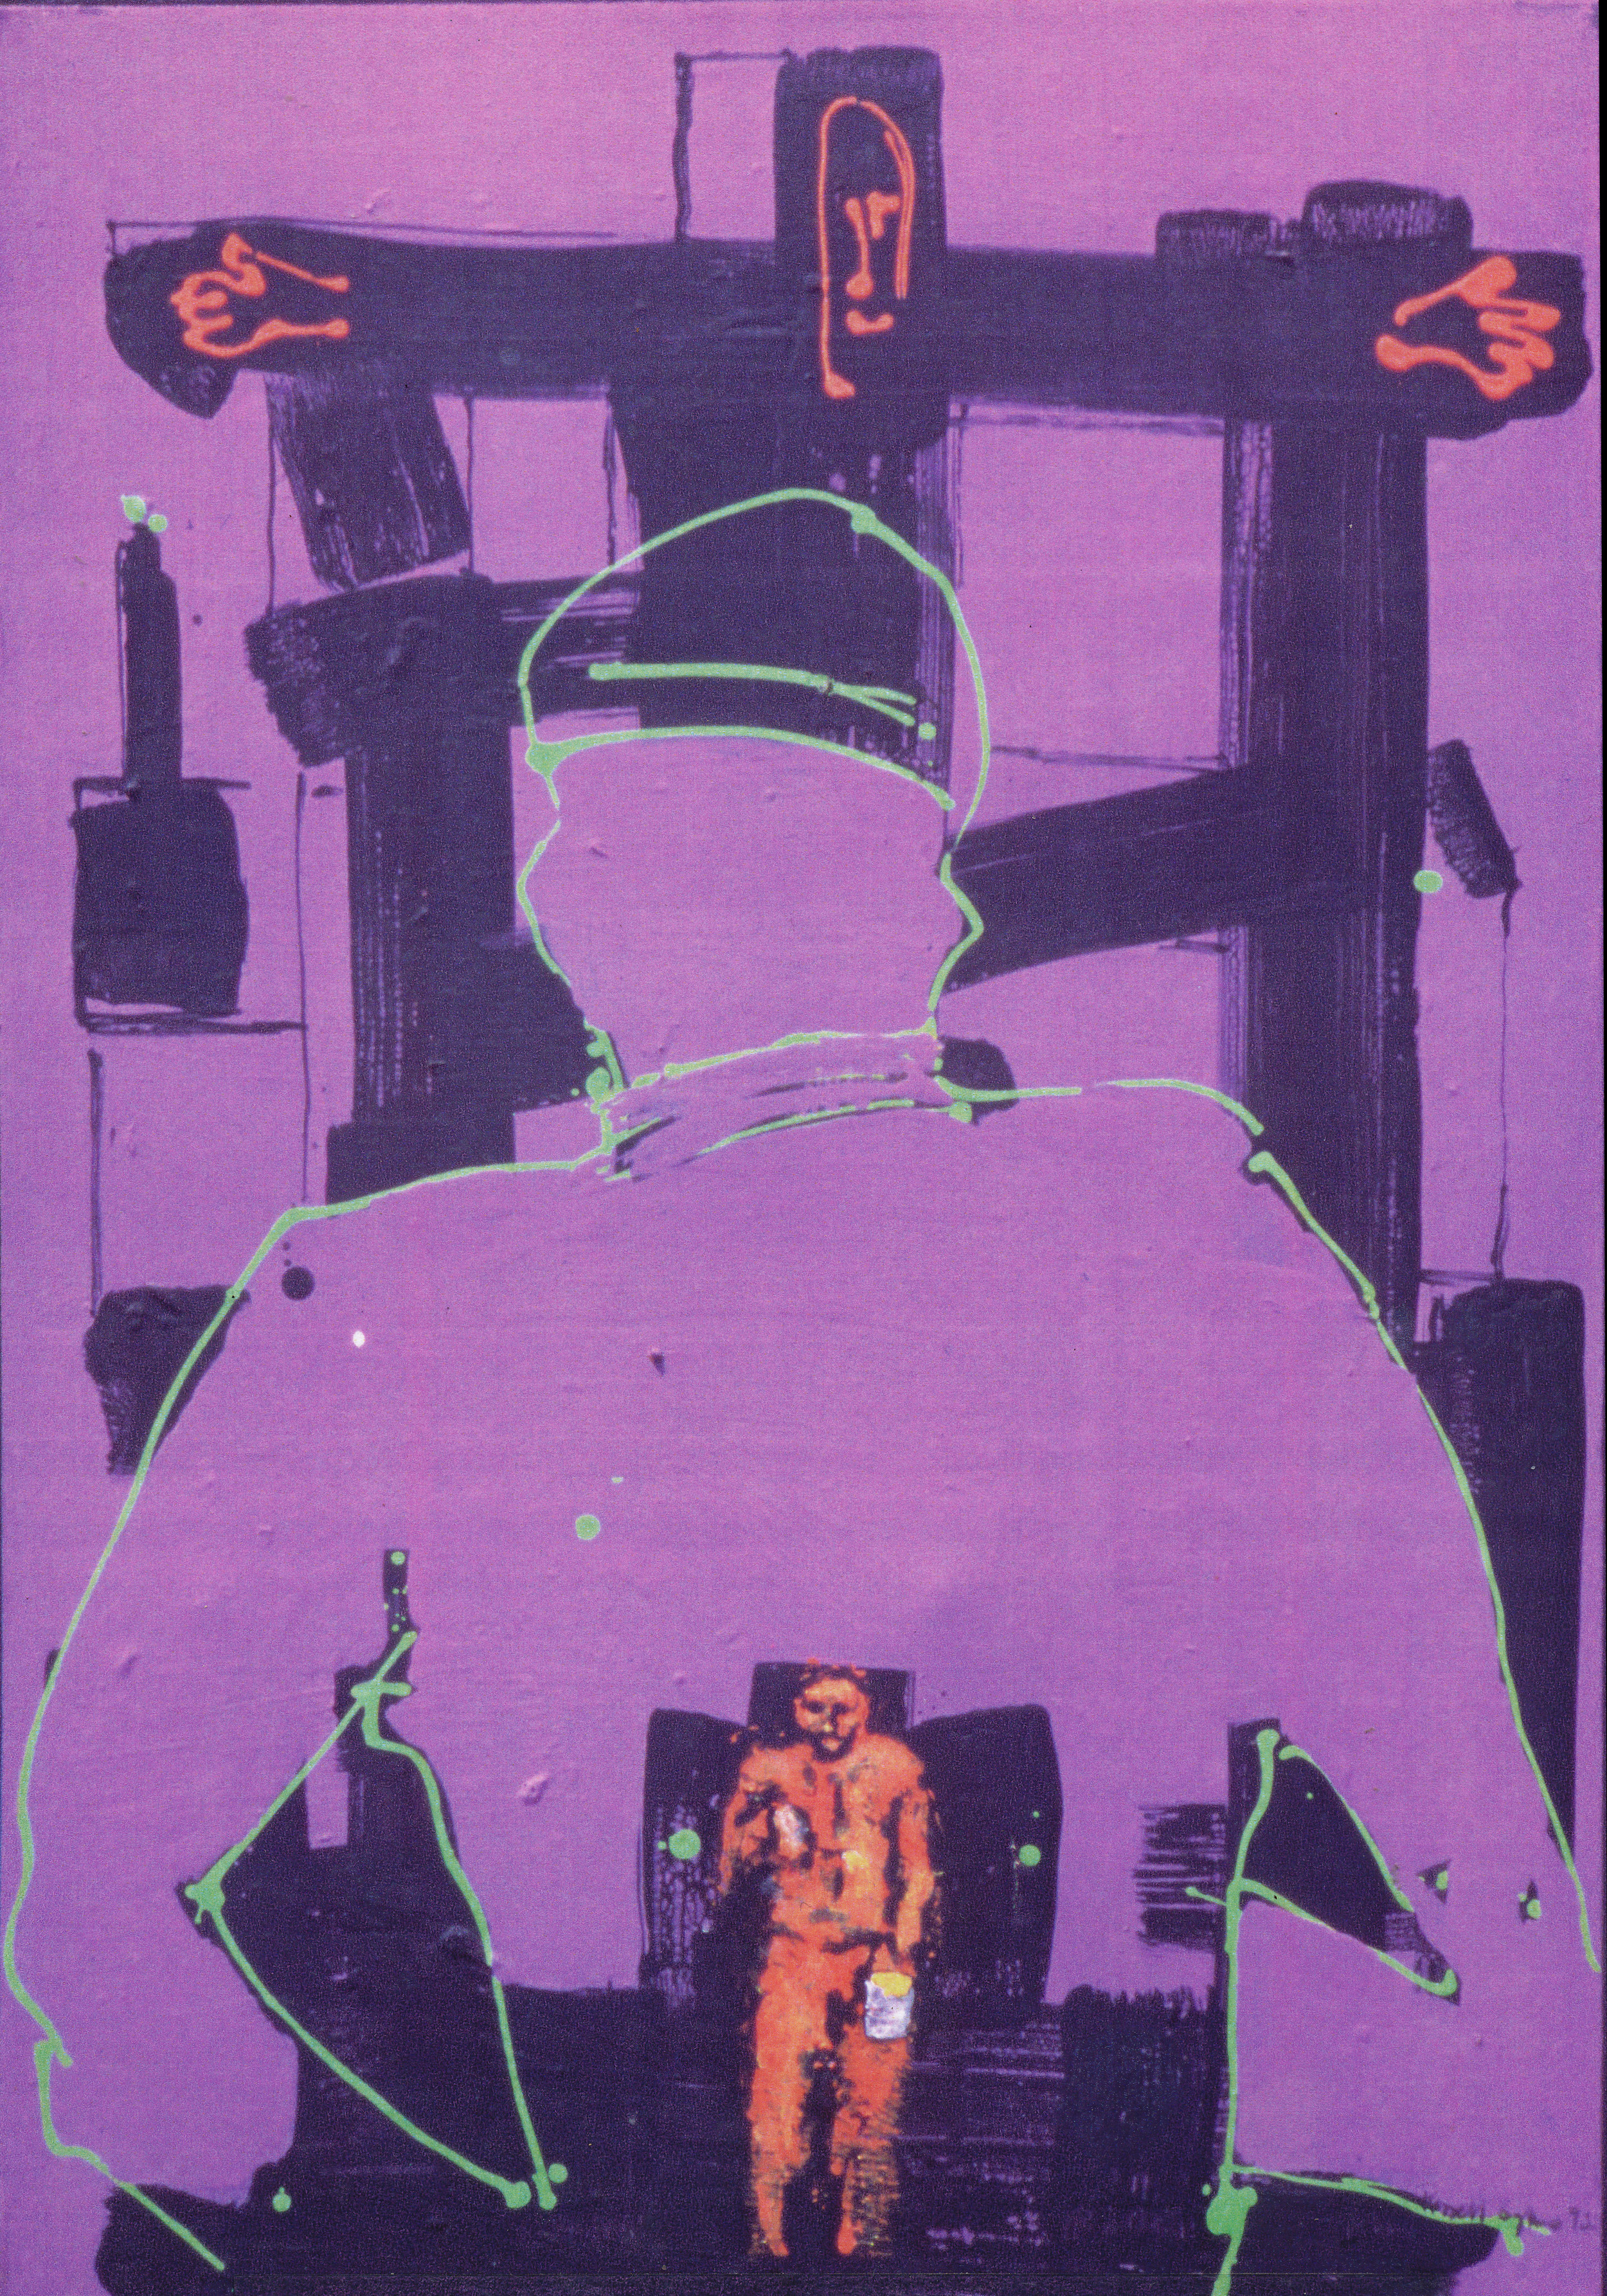 Crucifixion on a Painter, 1992